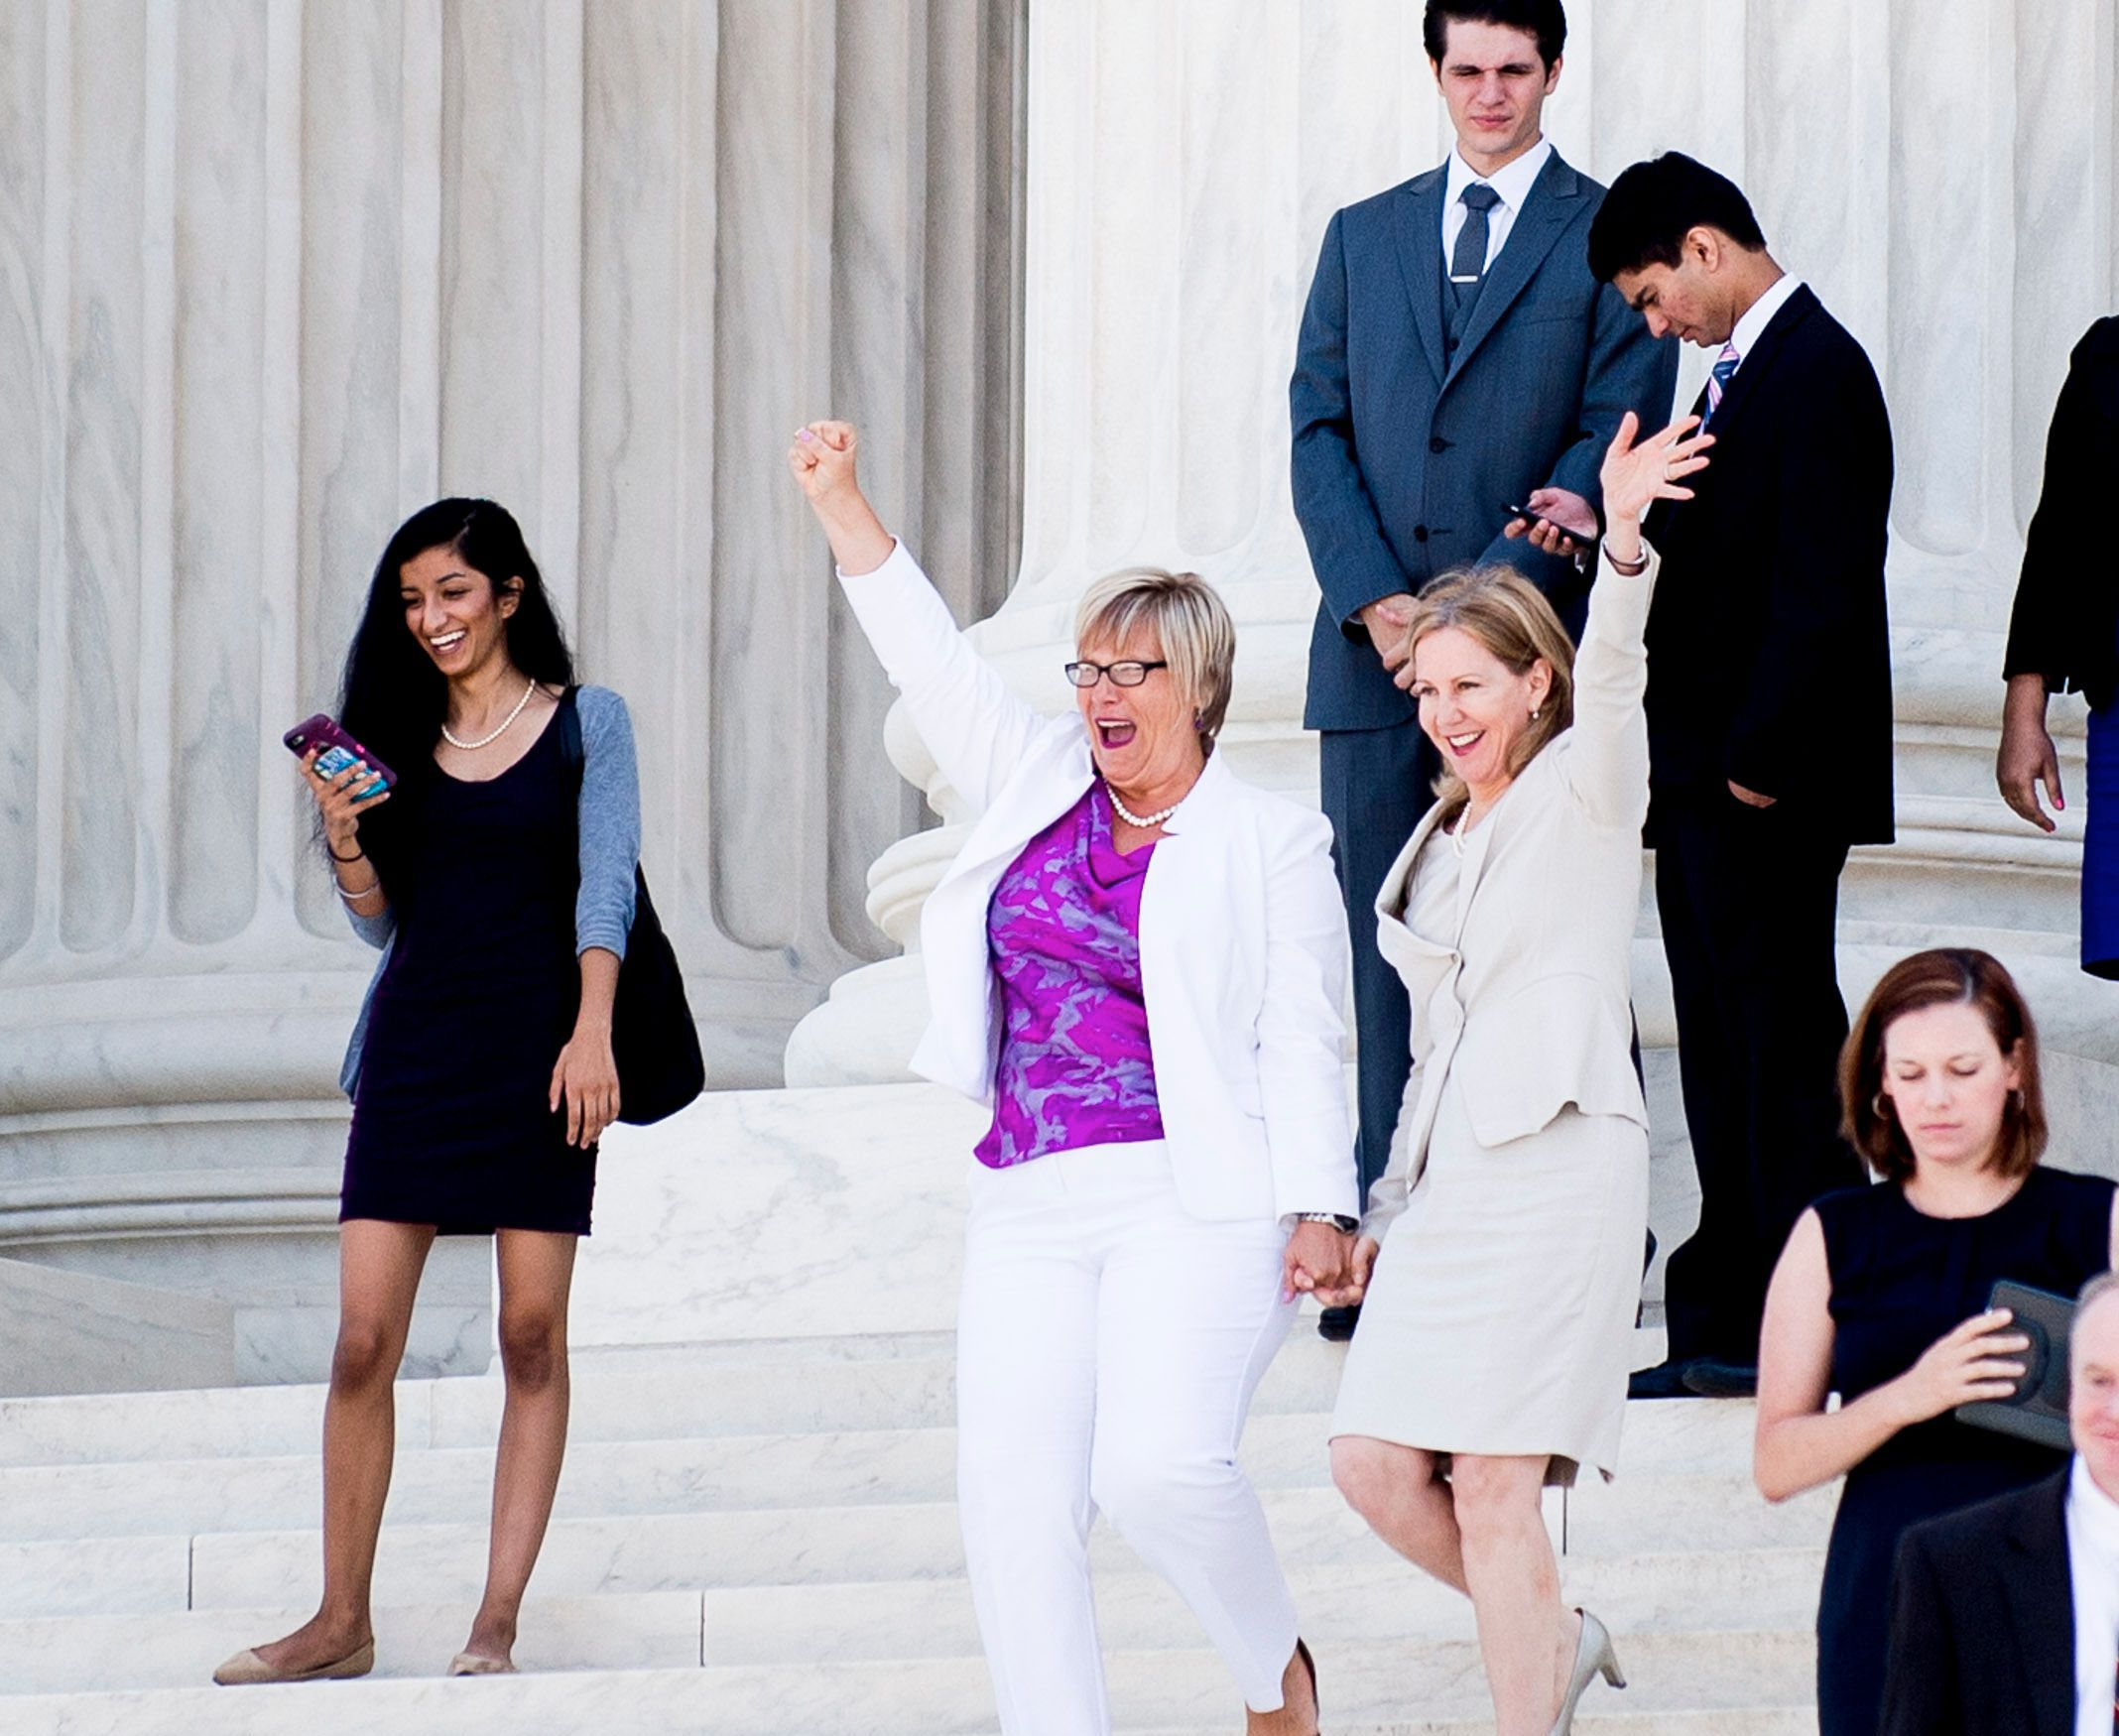 SCOTUS Upholds Abortion Rights in Texas: Abortion provider Amy Hagstrom-Miller and Nancy Northup, President of The Center for Reproductive Rights on the steps of the United States Supreme Court on June 27, 2016 in Washington, DC.